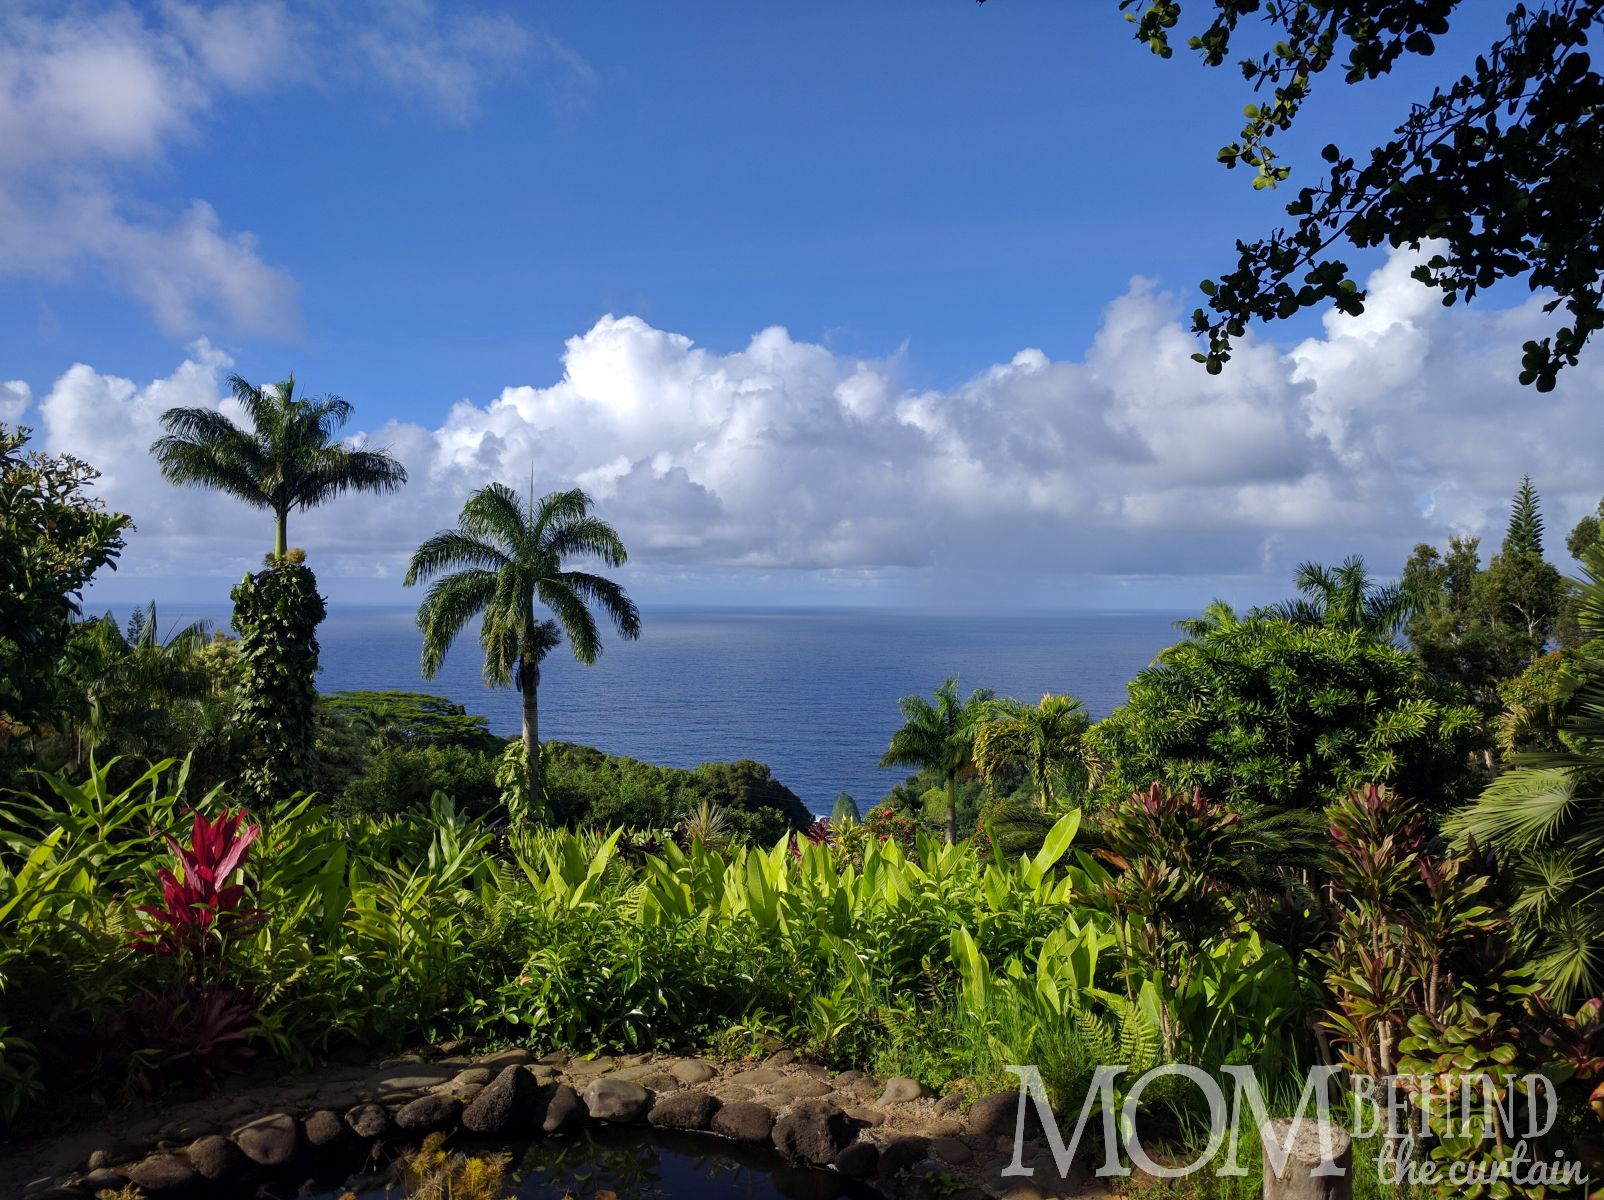 Maui's Garden of Eden is well worth the price of admission for the views.